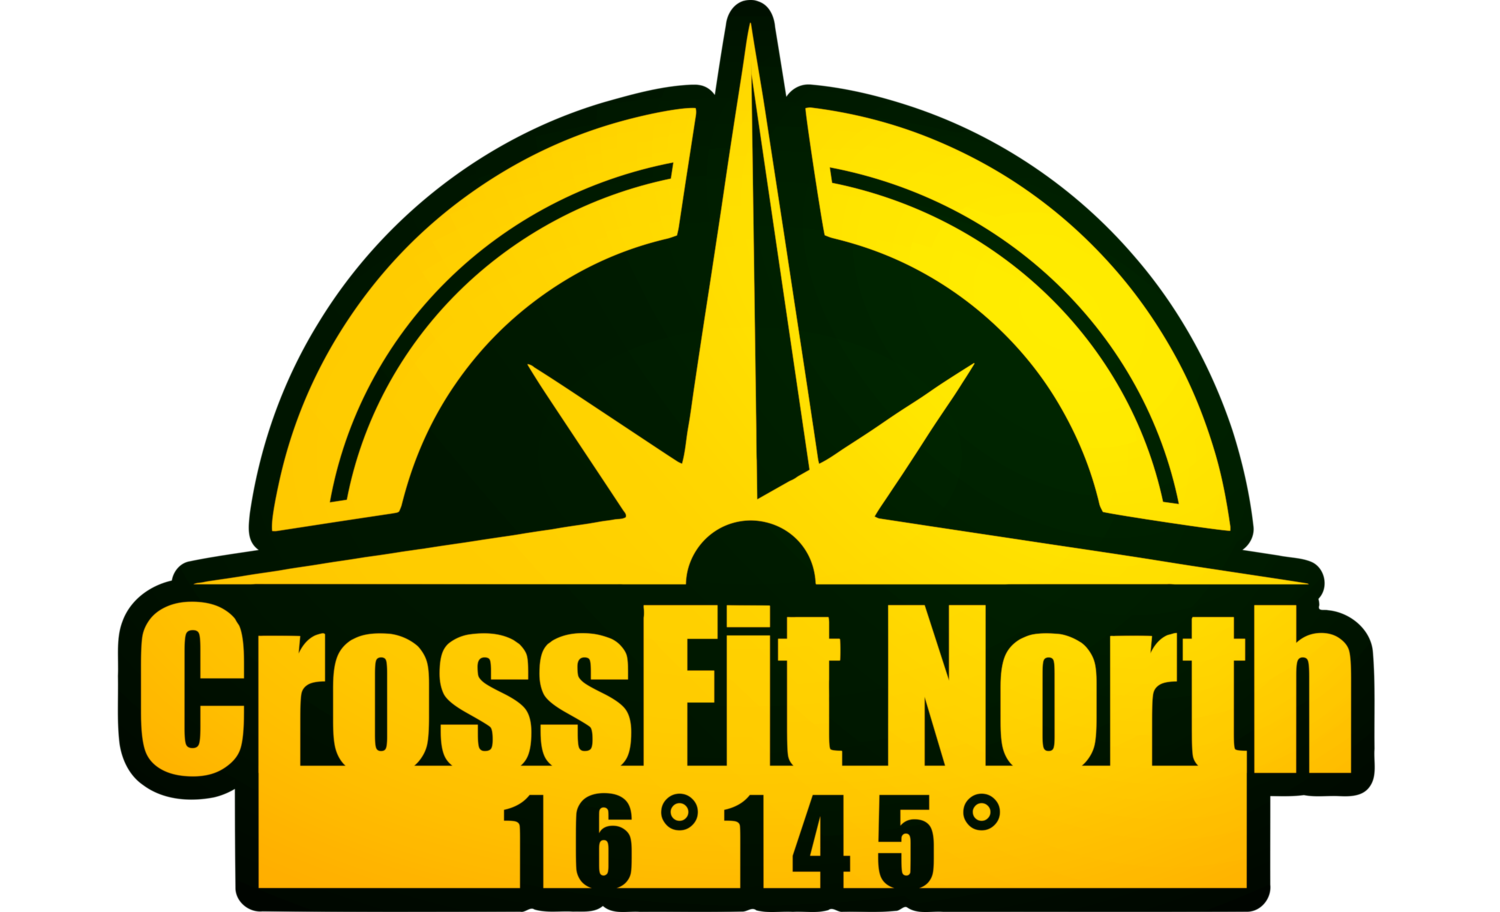 CrossFit North 16145